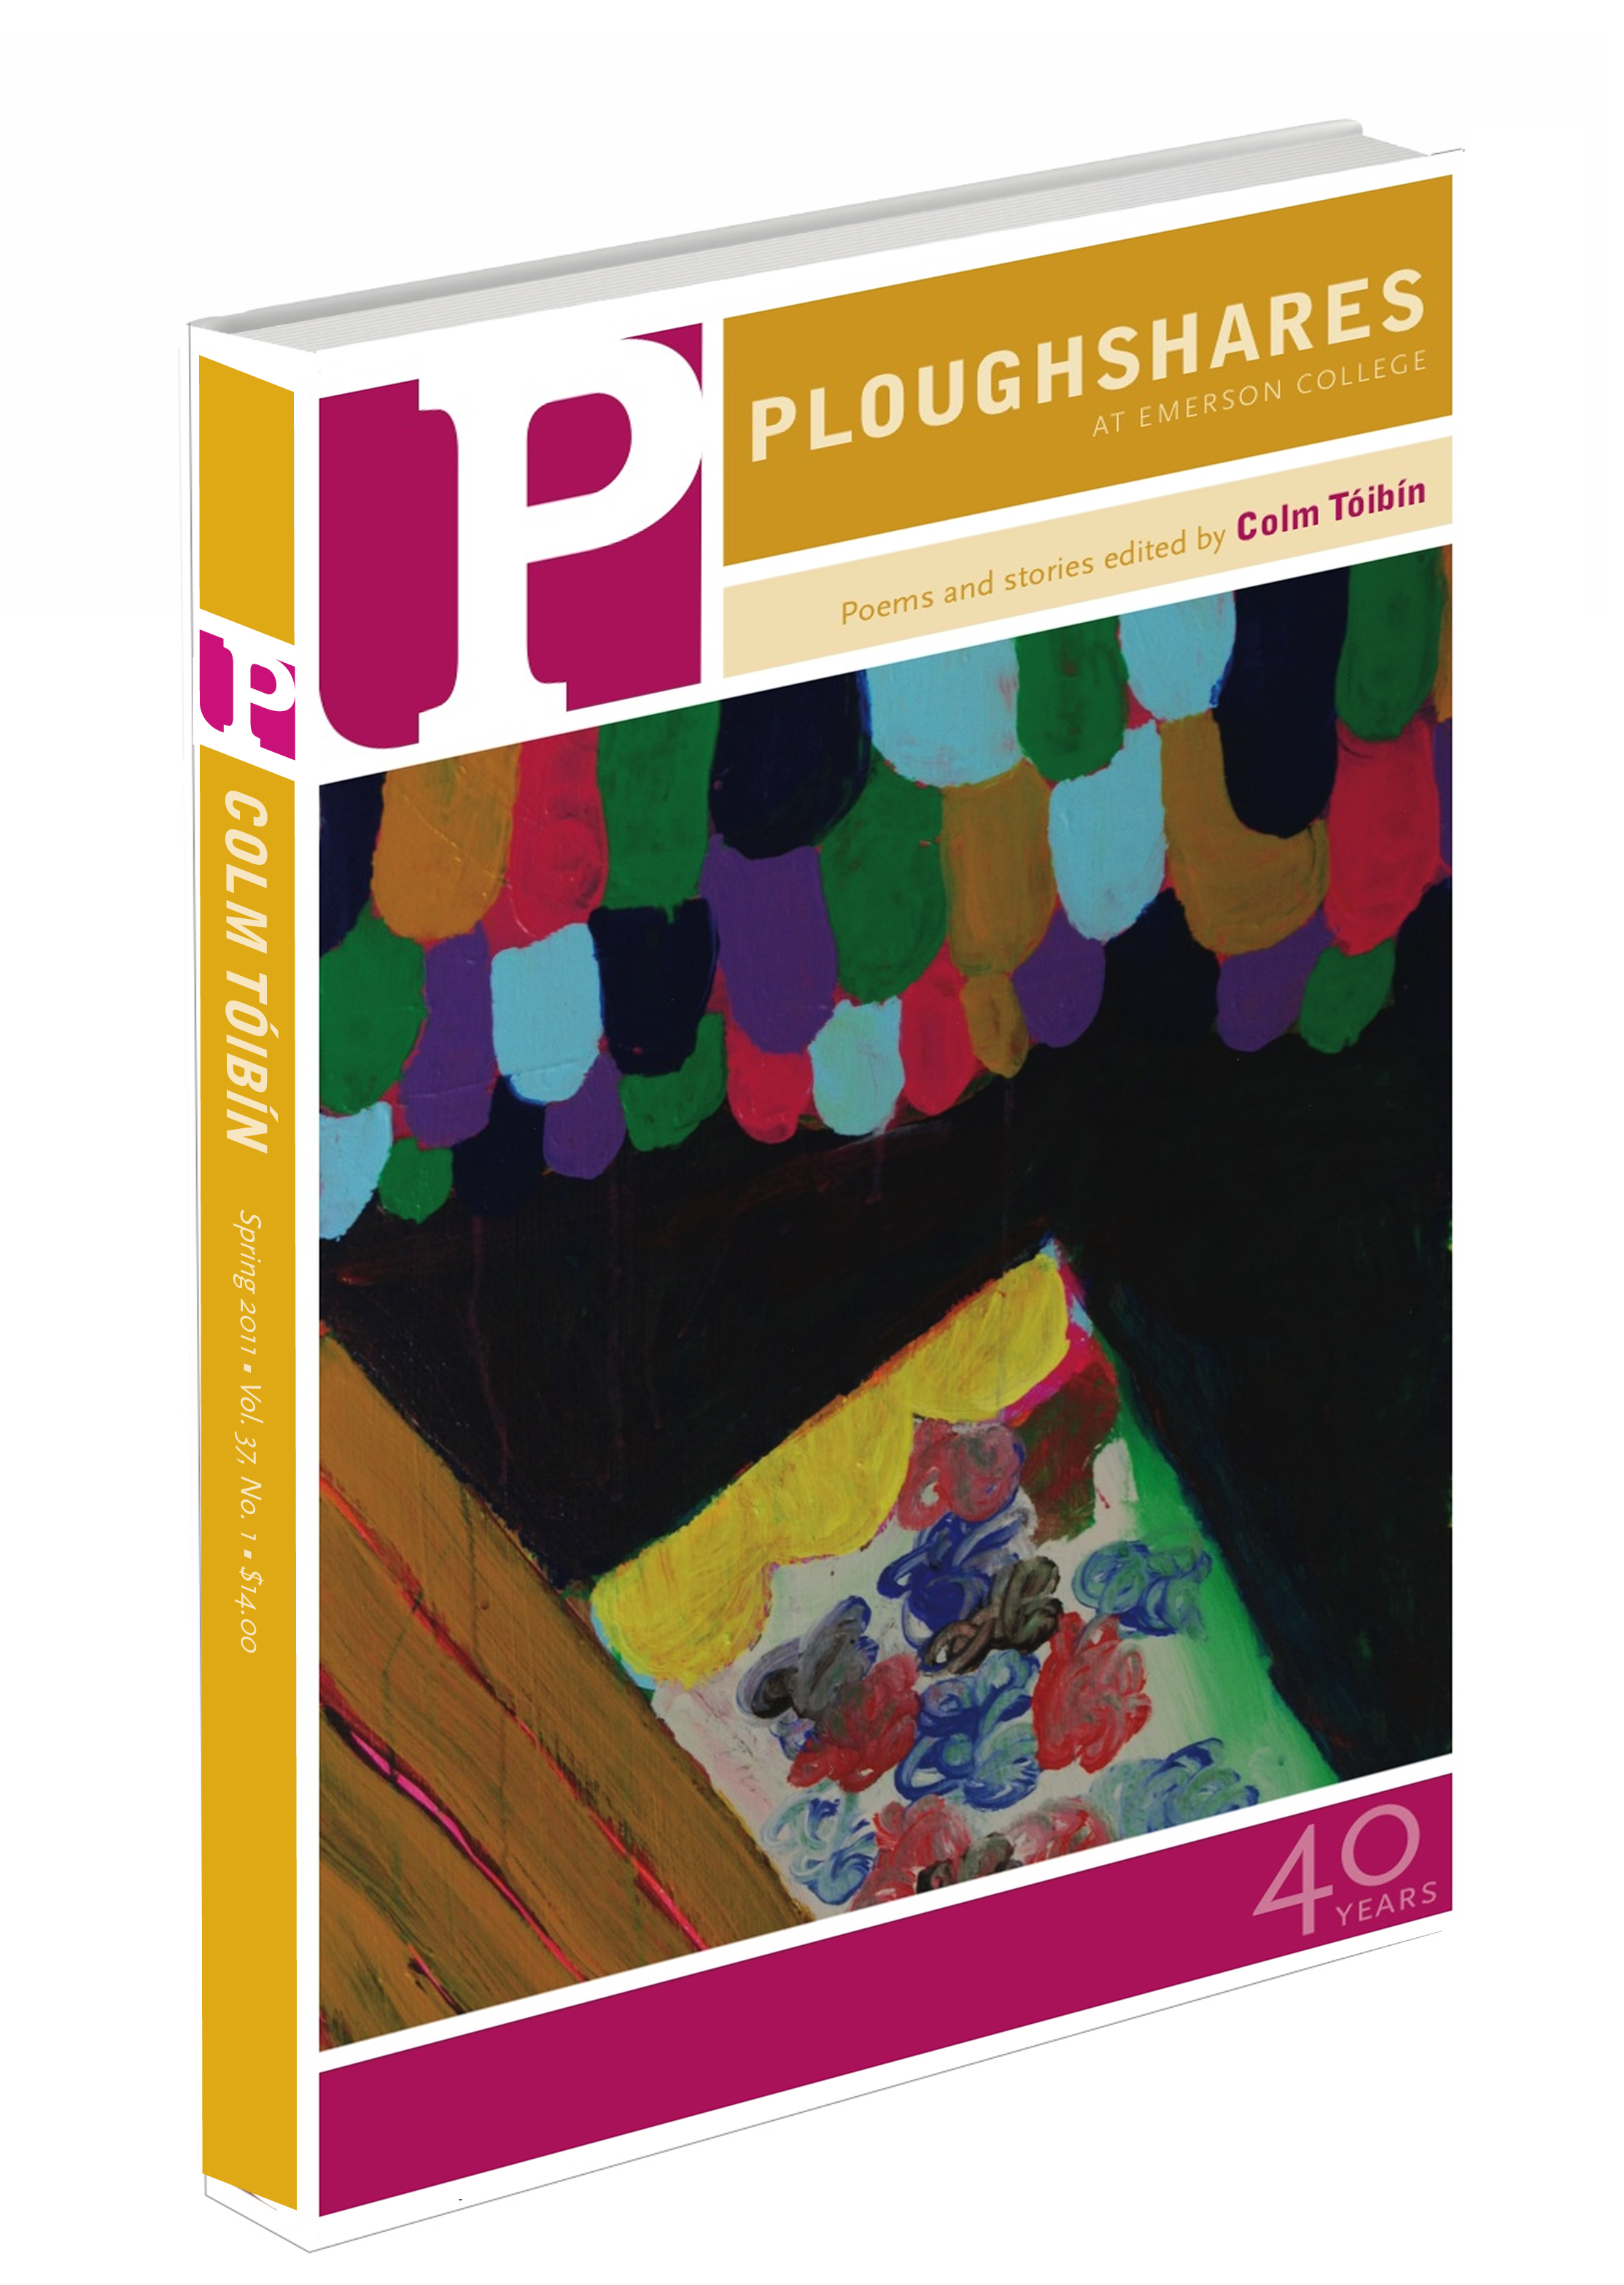 Ploughshares